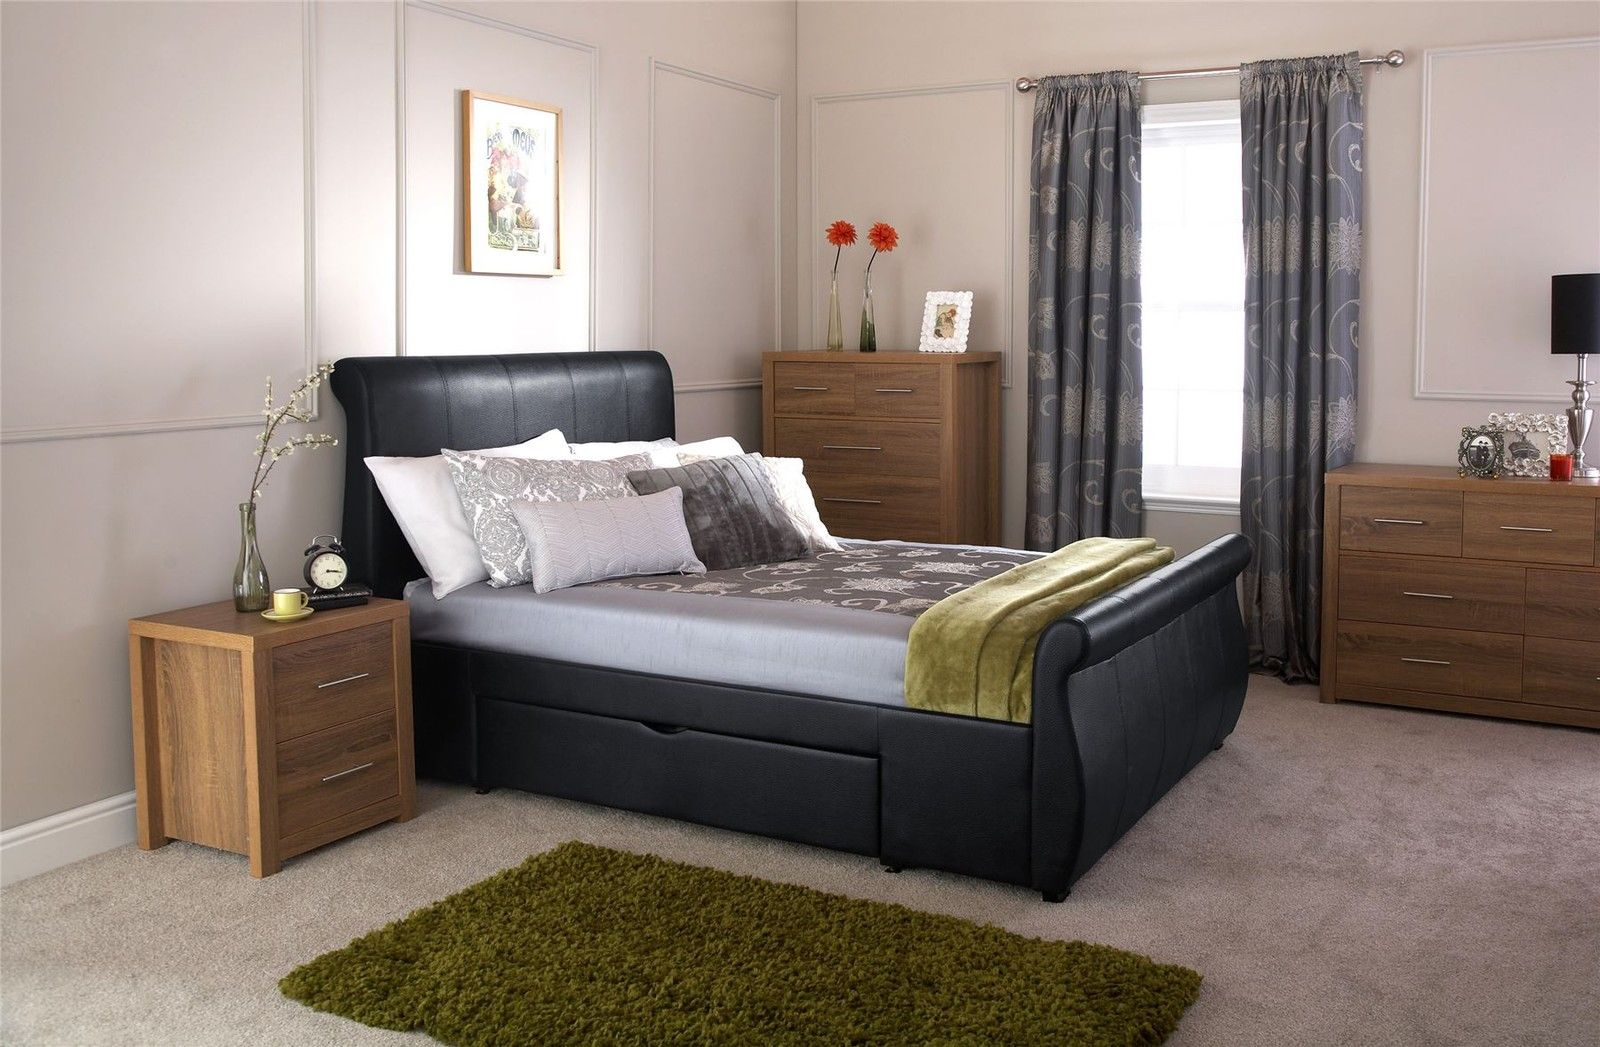 ALABAMA-FAUX-LEATHER-STORAGE-BED-SLEIGH-STYLE-BEDSTEAD- & ALABAMA FAUX LEATHER STORAGE BED SLEIGH STYLE BEDSTEAD W/ DRAWERS ...